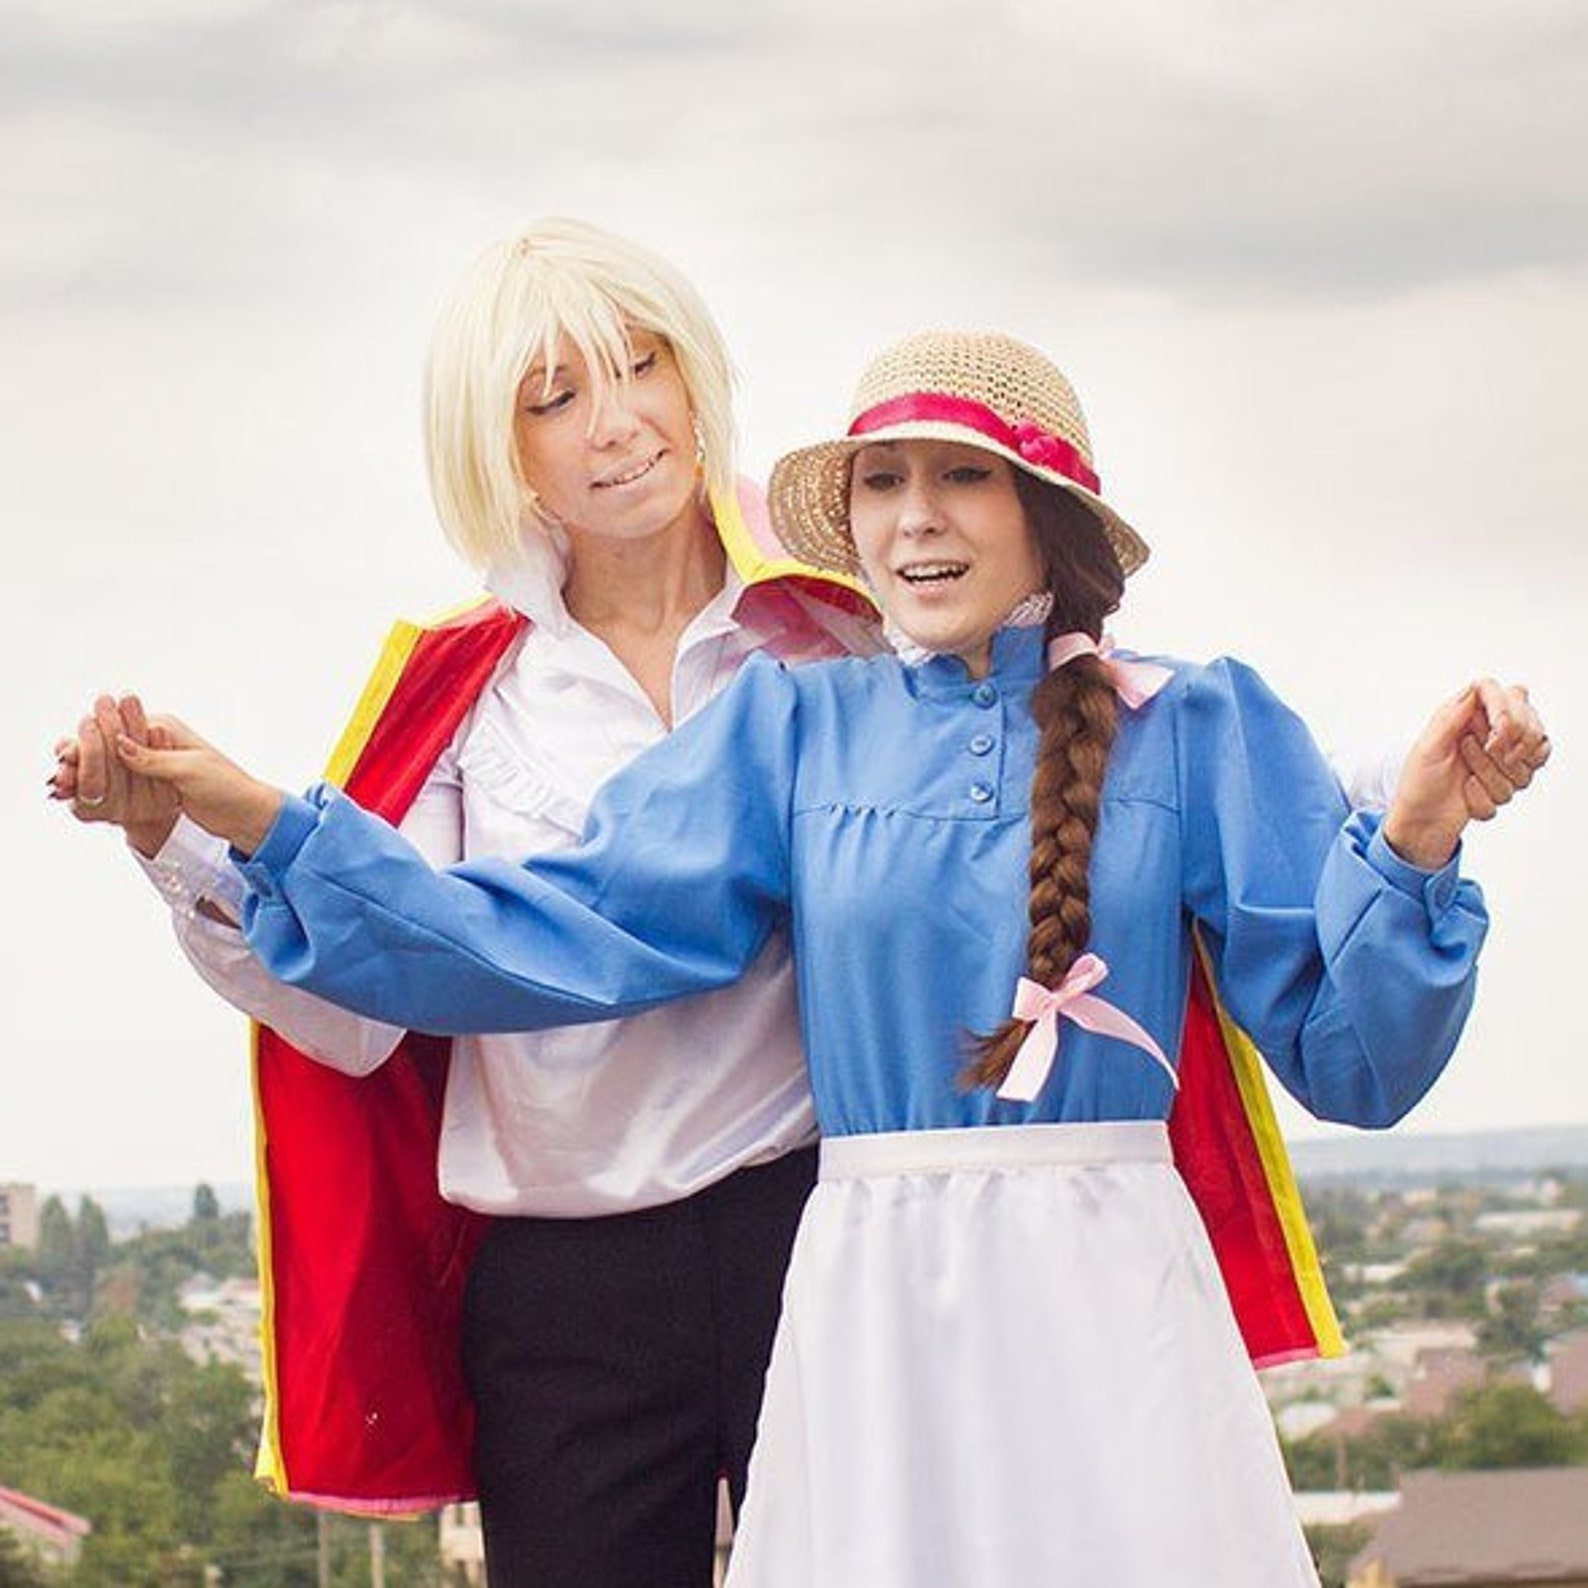 Sophie Howl's Moving Castle Cosplay costume